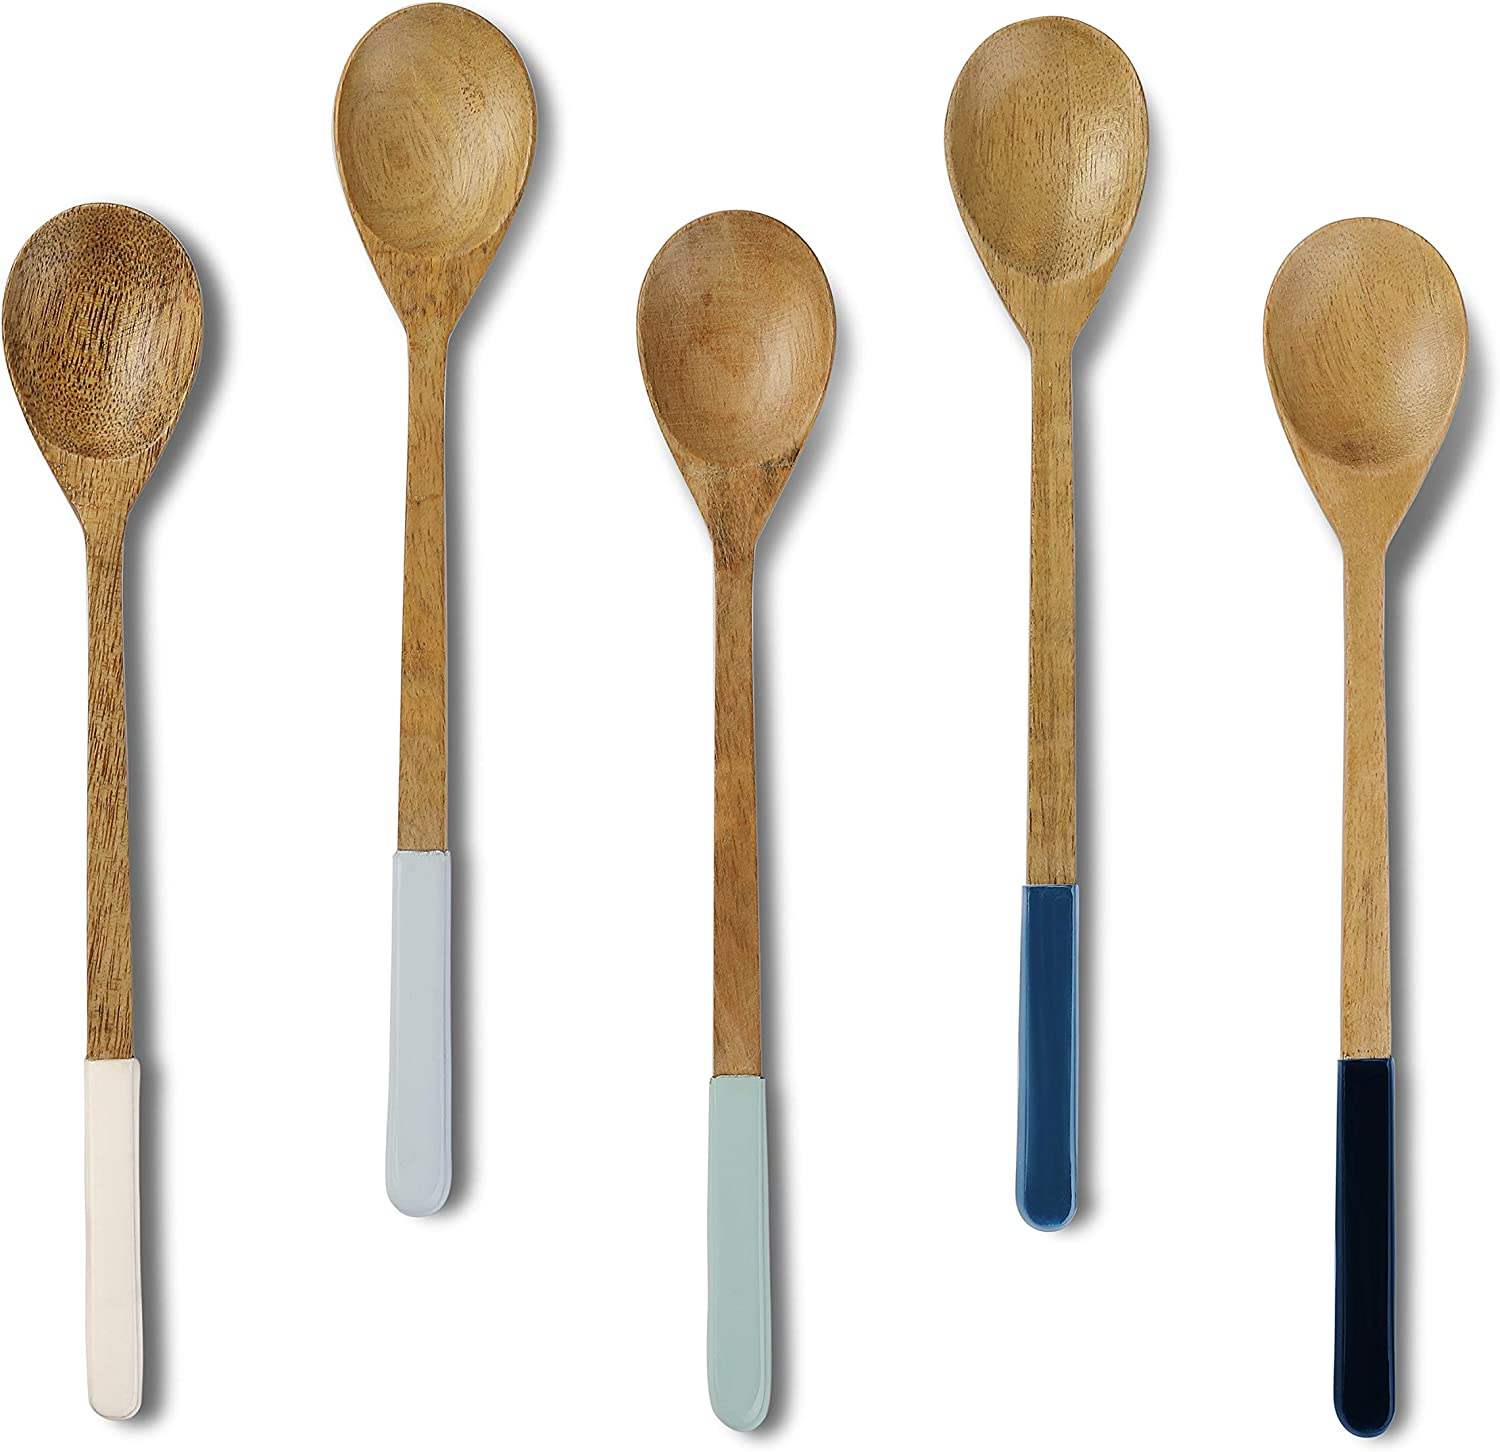 Folkulture Wooden Spoons for Cooking or Eating Soup or Rice, Mango Wood Mini Spoons for Korean or Japanese Meals, Small Wooden Spoons or Utensils for Mixing or Stirring, Set of 5, 9 inch, Blue Ombre